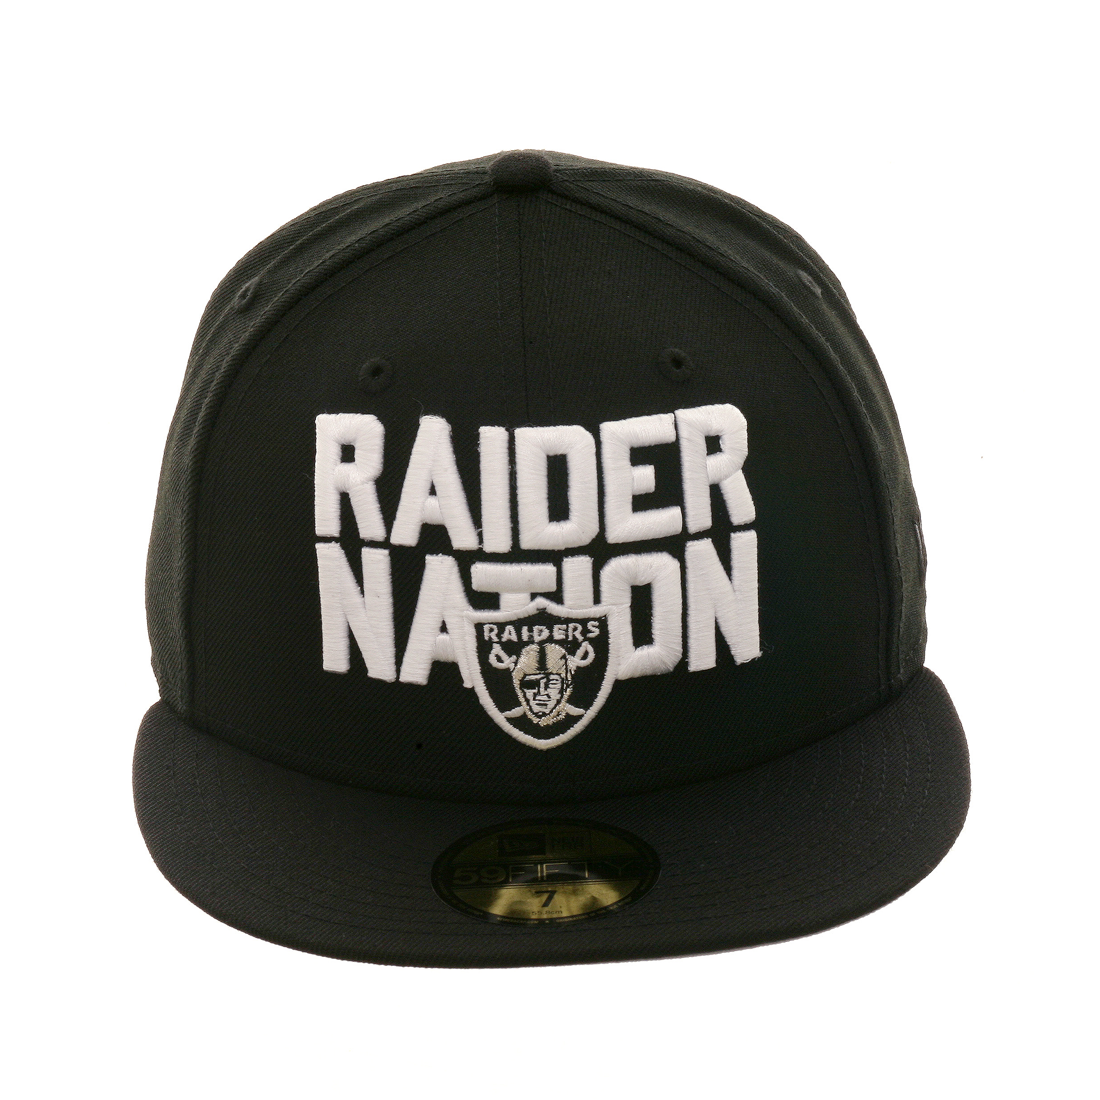 912c9c456c83cd Exclusive New Era 59Fifty Oakland Raiders 'Raider Nation' Hat - Black,  $24.98 - Save $15.01